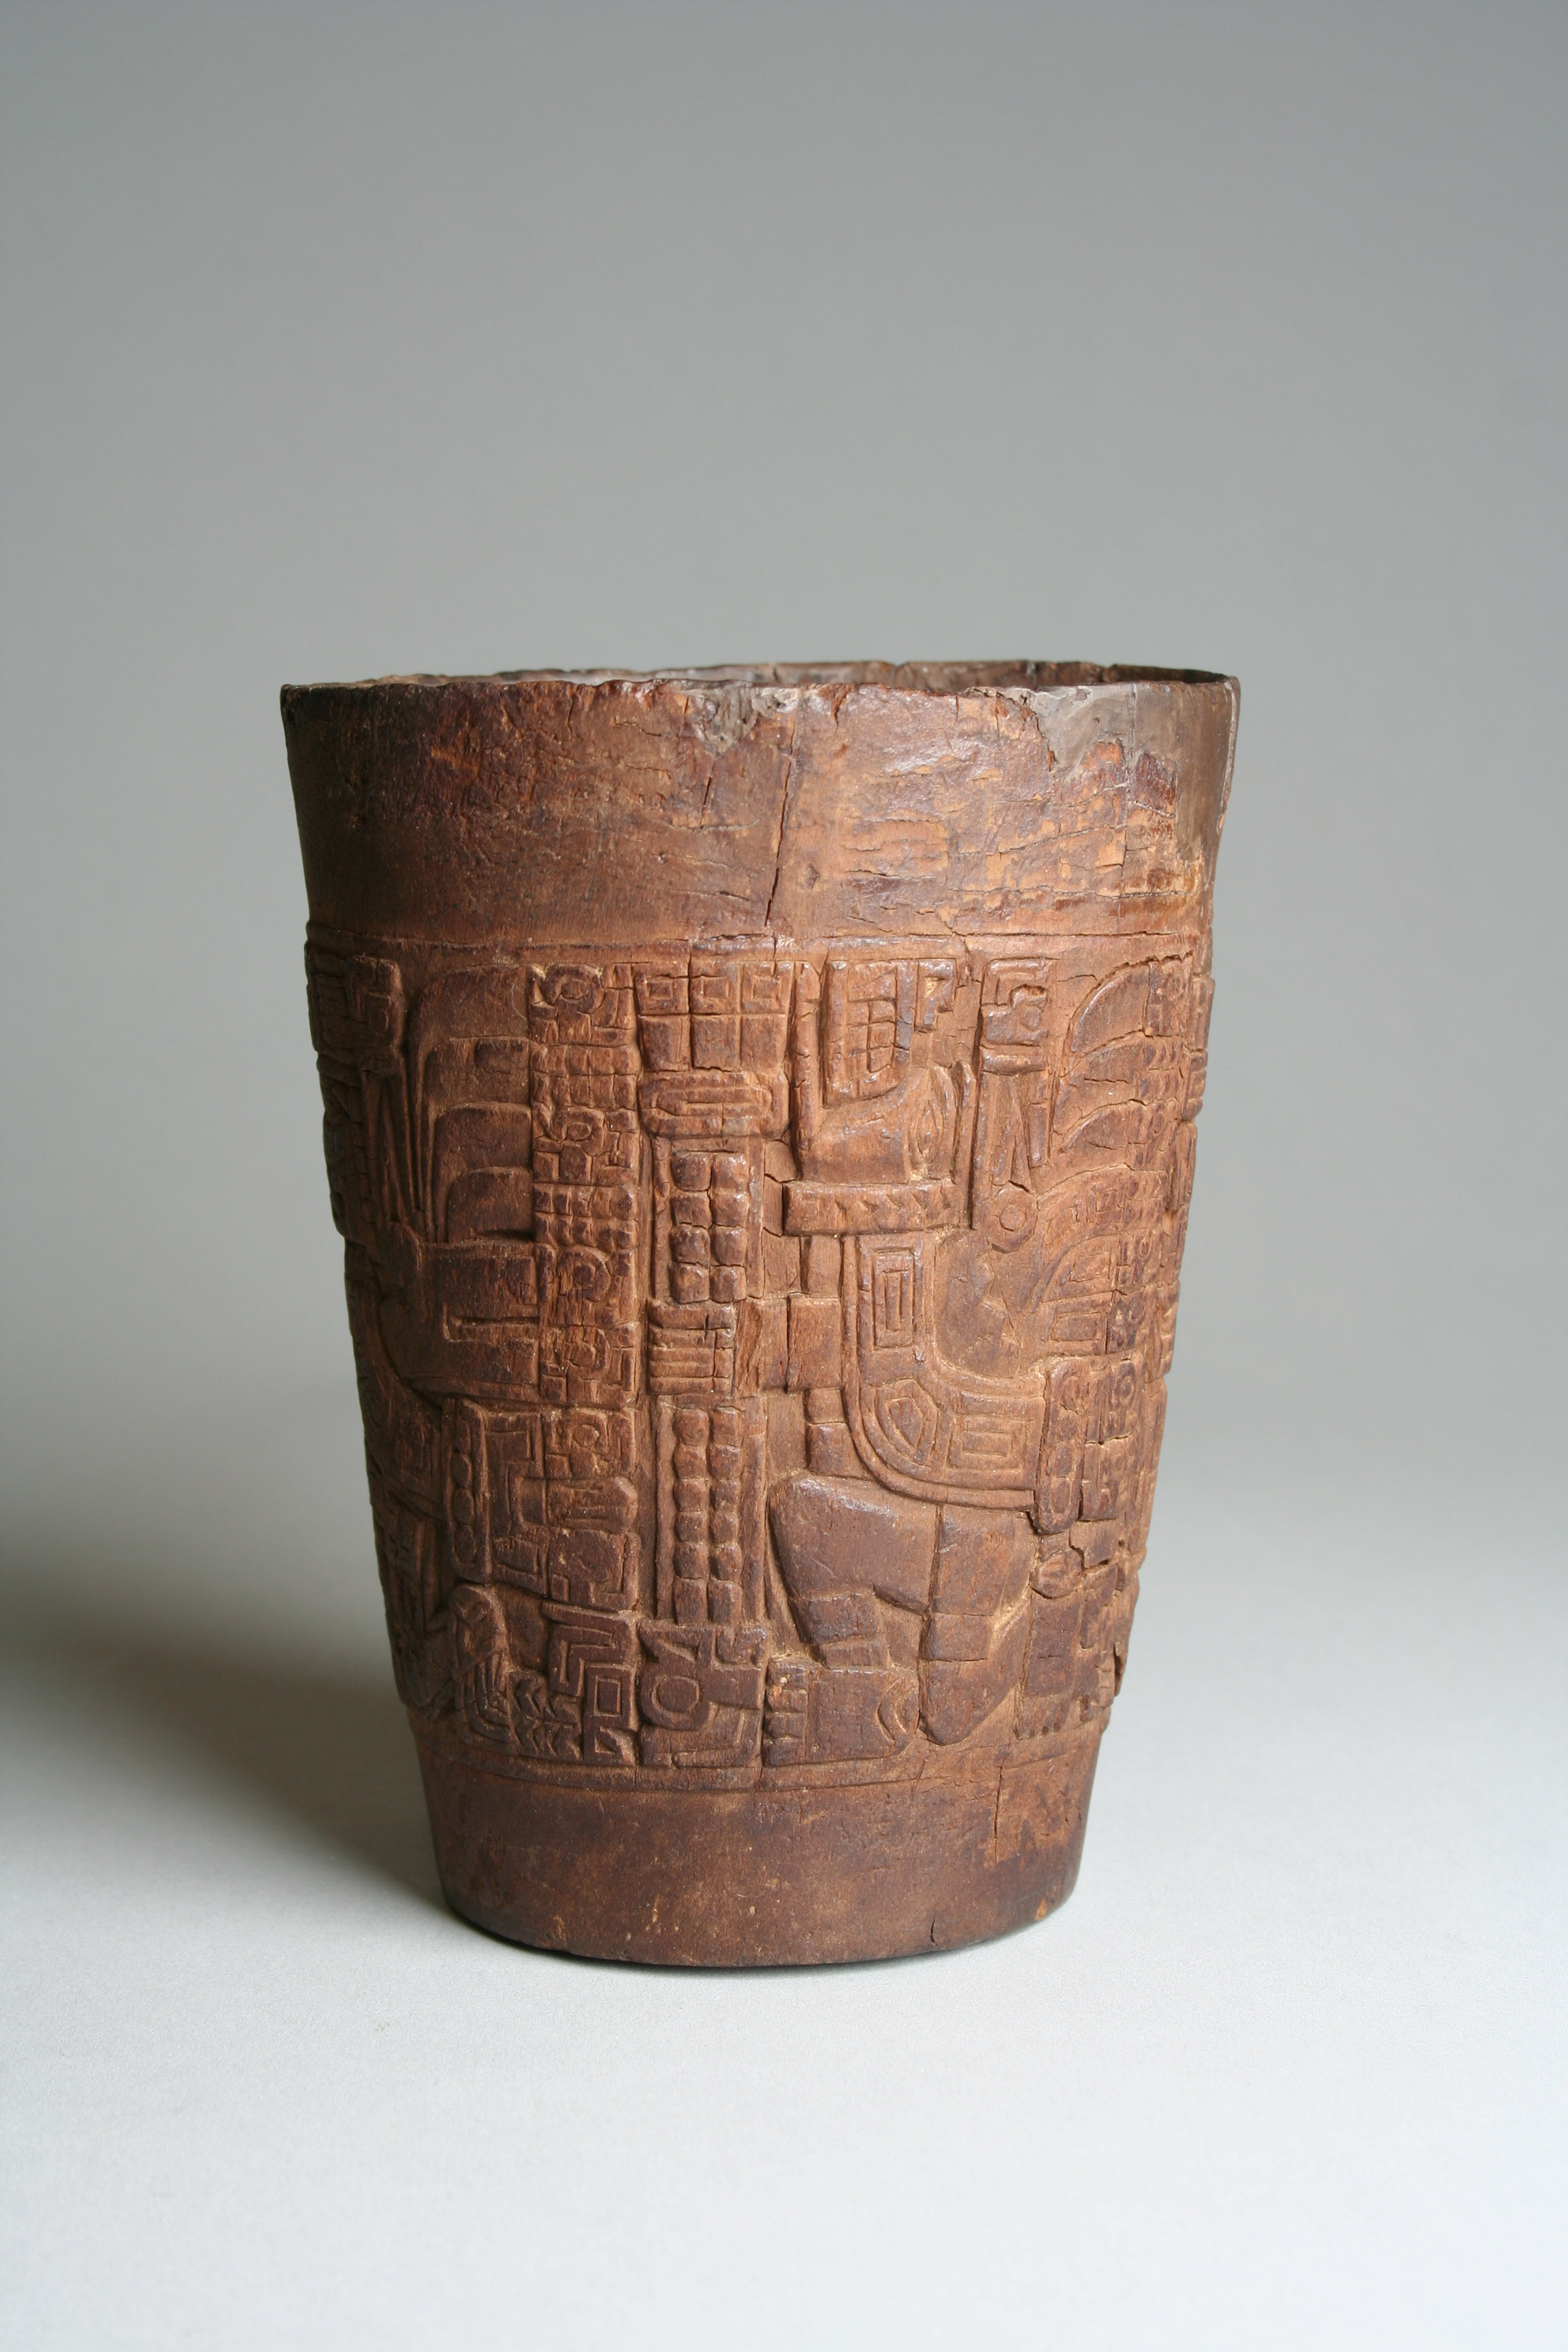 Wari wooden beaker (kero), 7th to 10th century, from Peru or Bolivia. These cups were used for drinking chicha. Accession No. 1978.412.214. Licenced by the Metropolitan Museum under CC0 1.0 Universal.